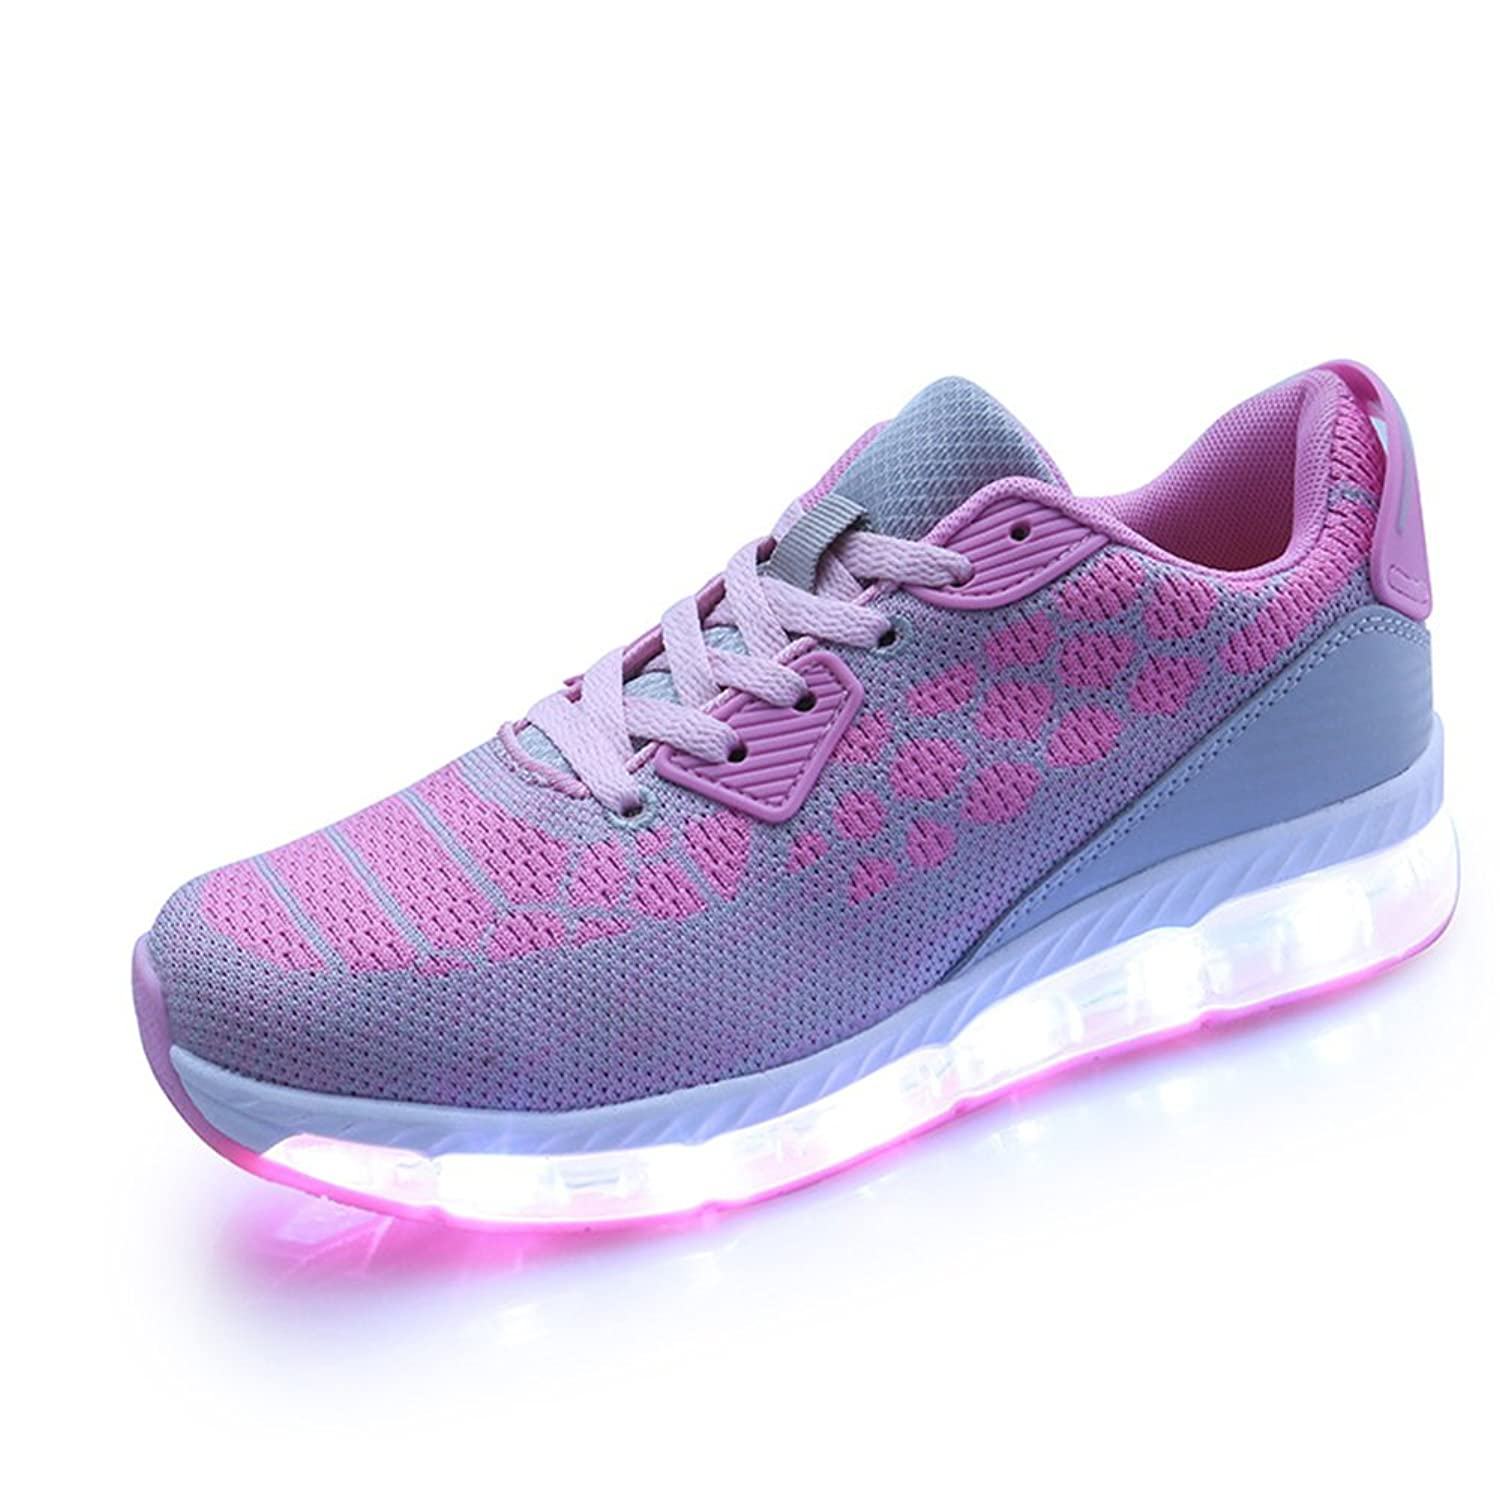 24XOmx55S99 Dance Breathable LED Light Up Shoes Flashing Sneakers for Women Girls